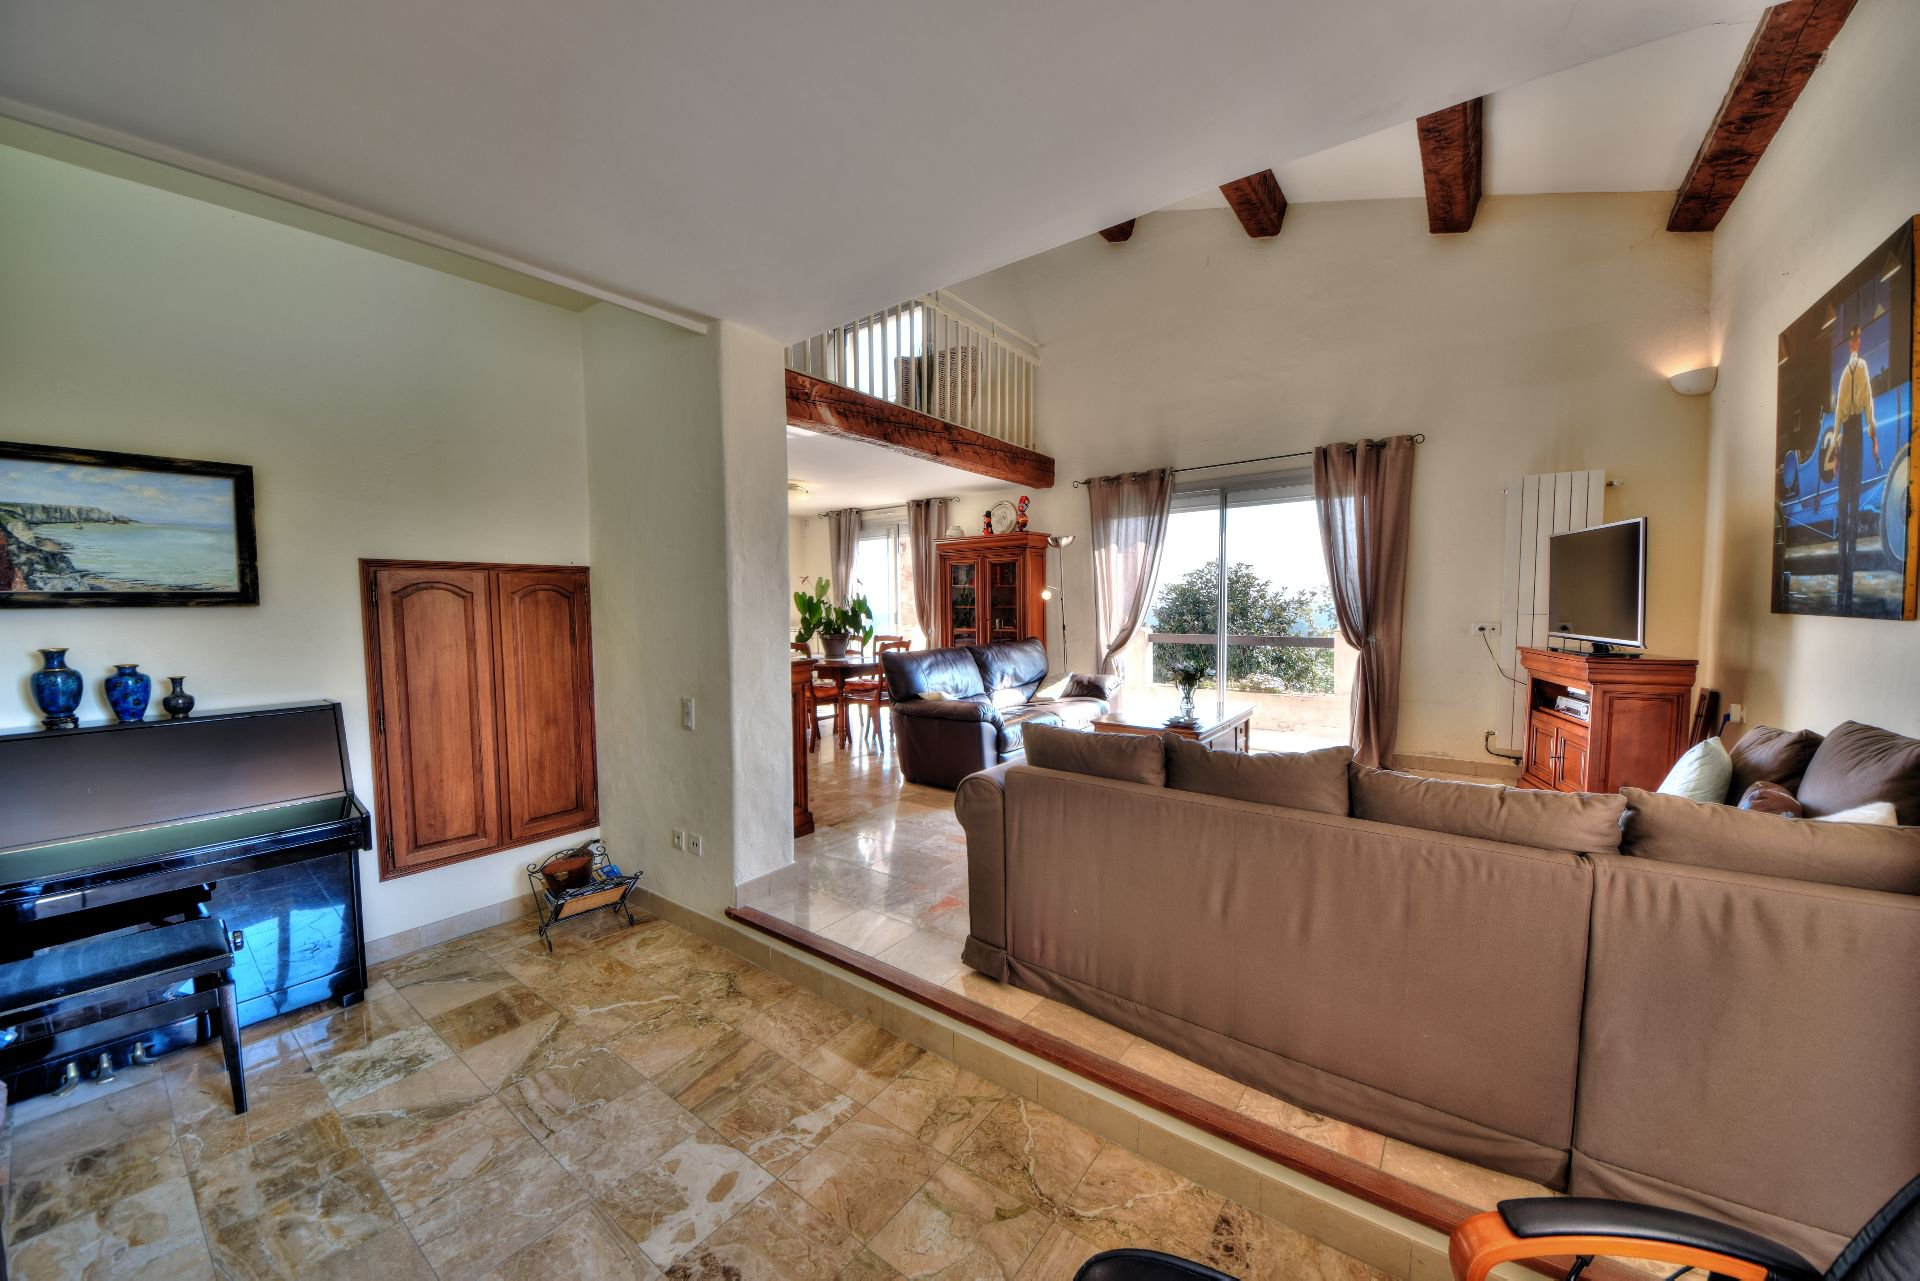 Living room of the villa 328 m² panoramic view, Draguignan, Var, Provence